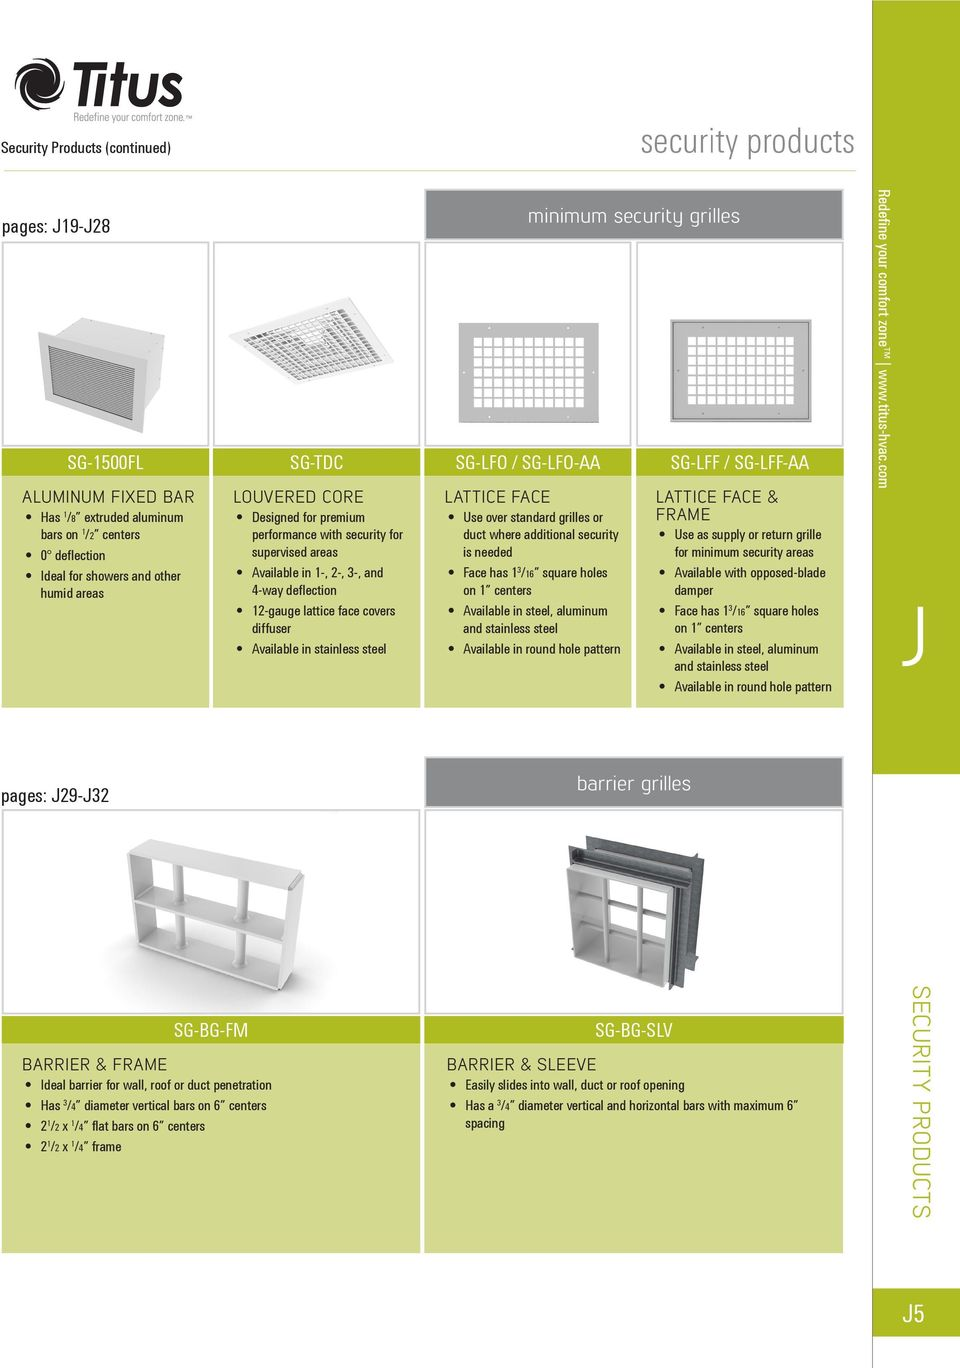 grilles SG-LFO / SG-LFO-AA LATTICE FACE Use over standard grilles or duct where additional security is needed Face has 1 3 /16 square holes on 1 centers Available in steel, aluminum and stainless